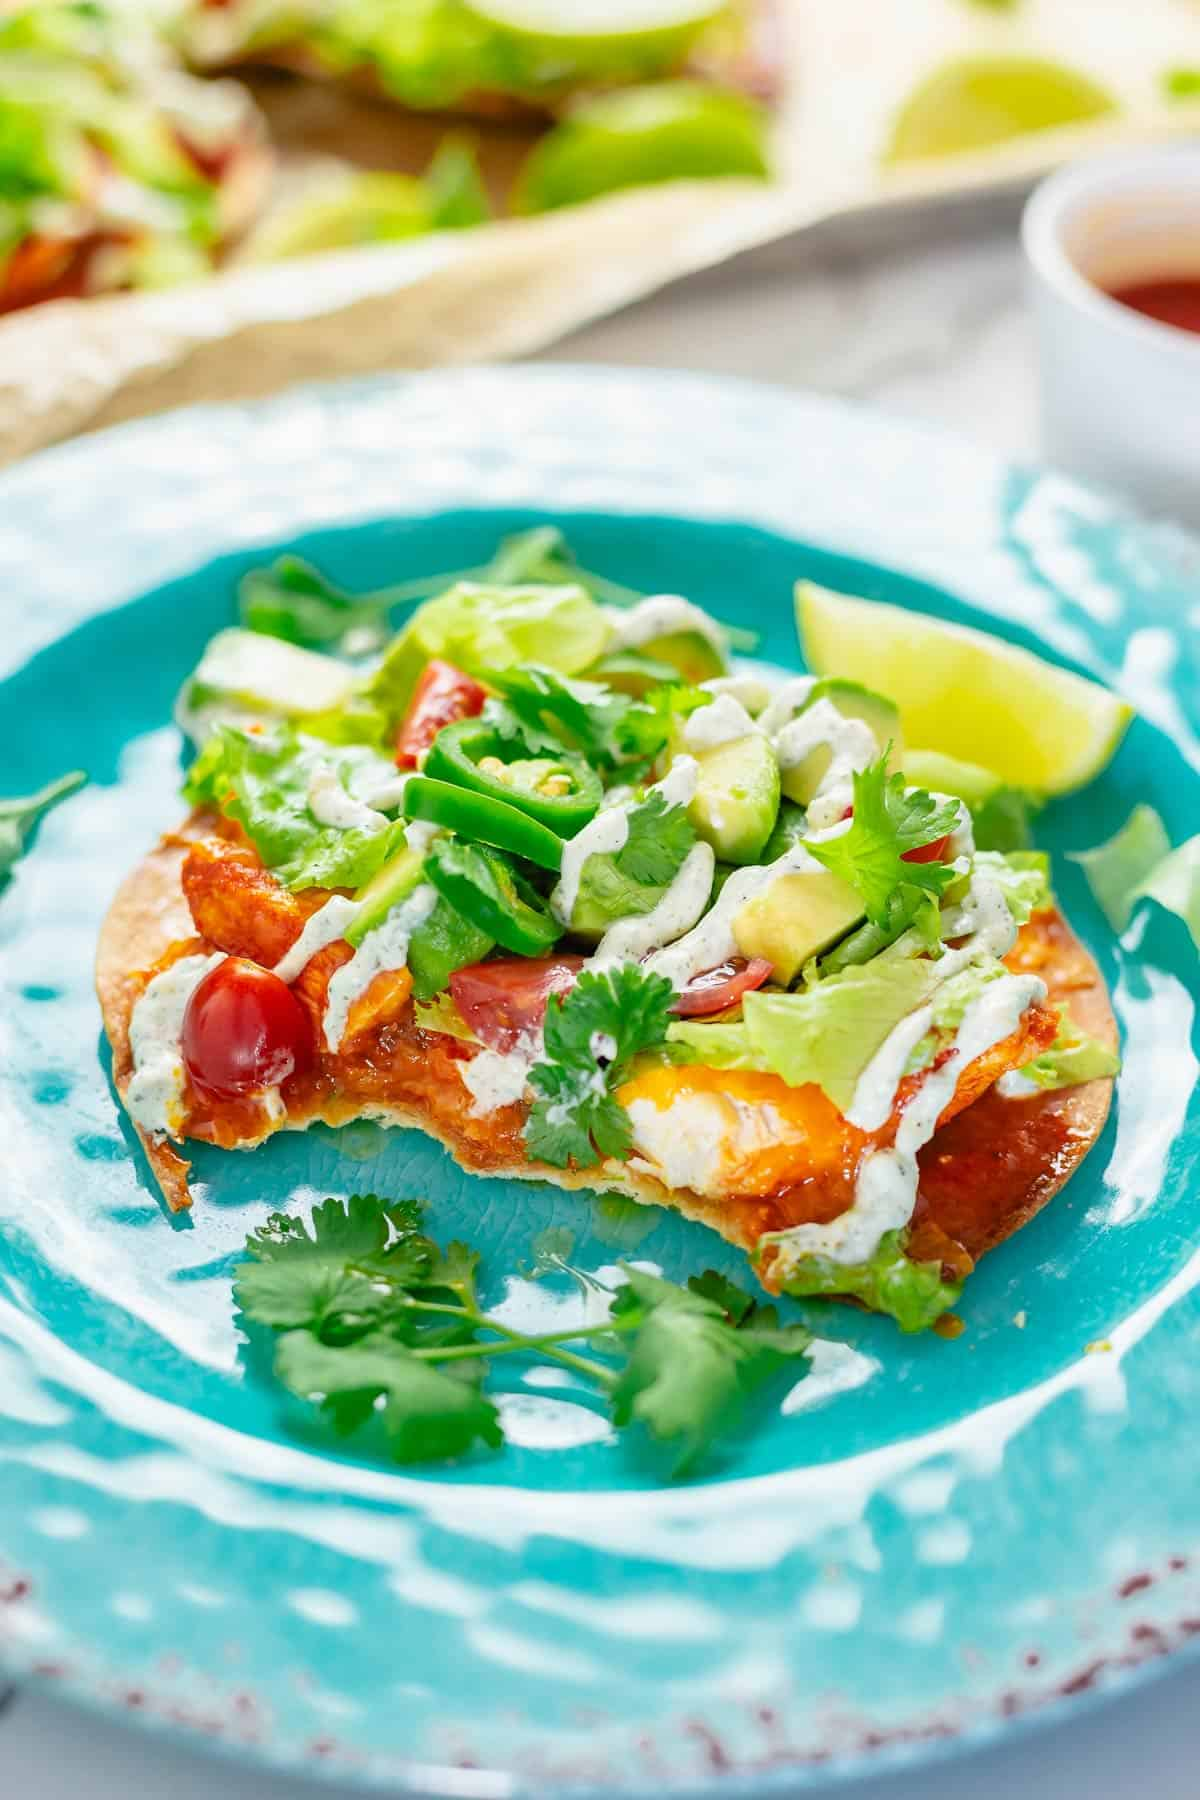 crispy tostadas with buffalo chicken toppings and ranch dressing close up shot on a blue plate